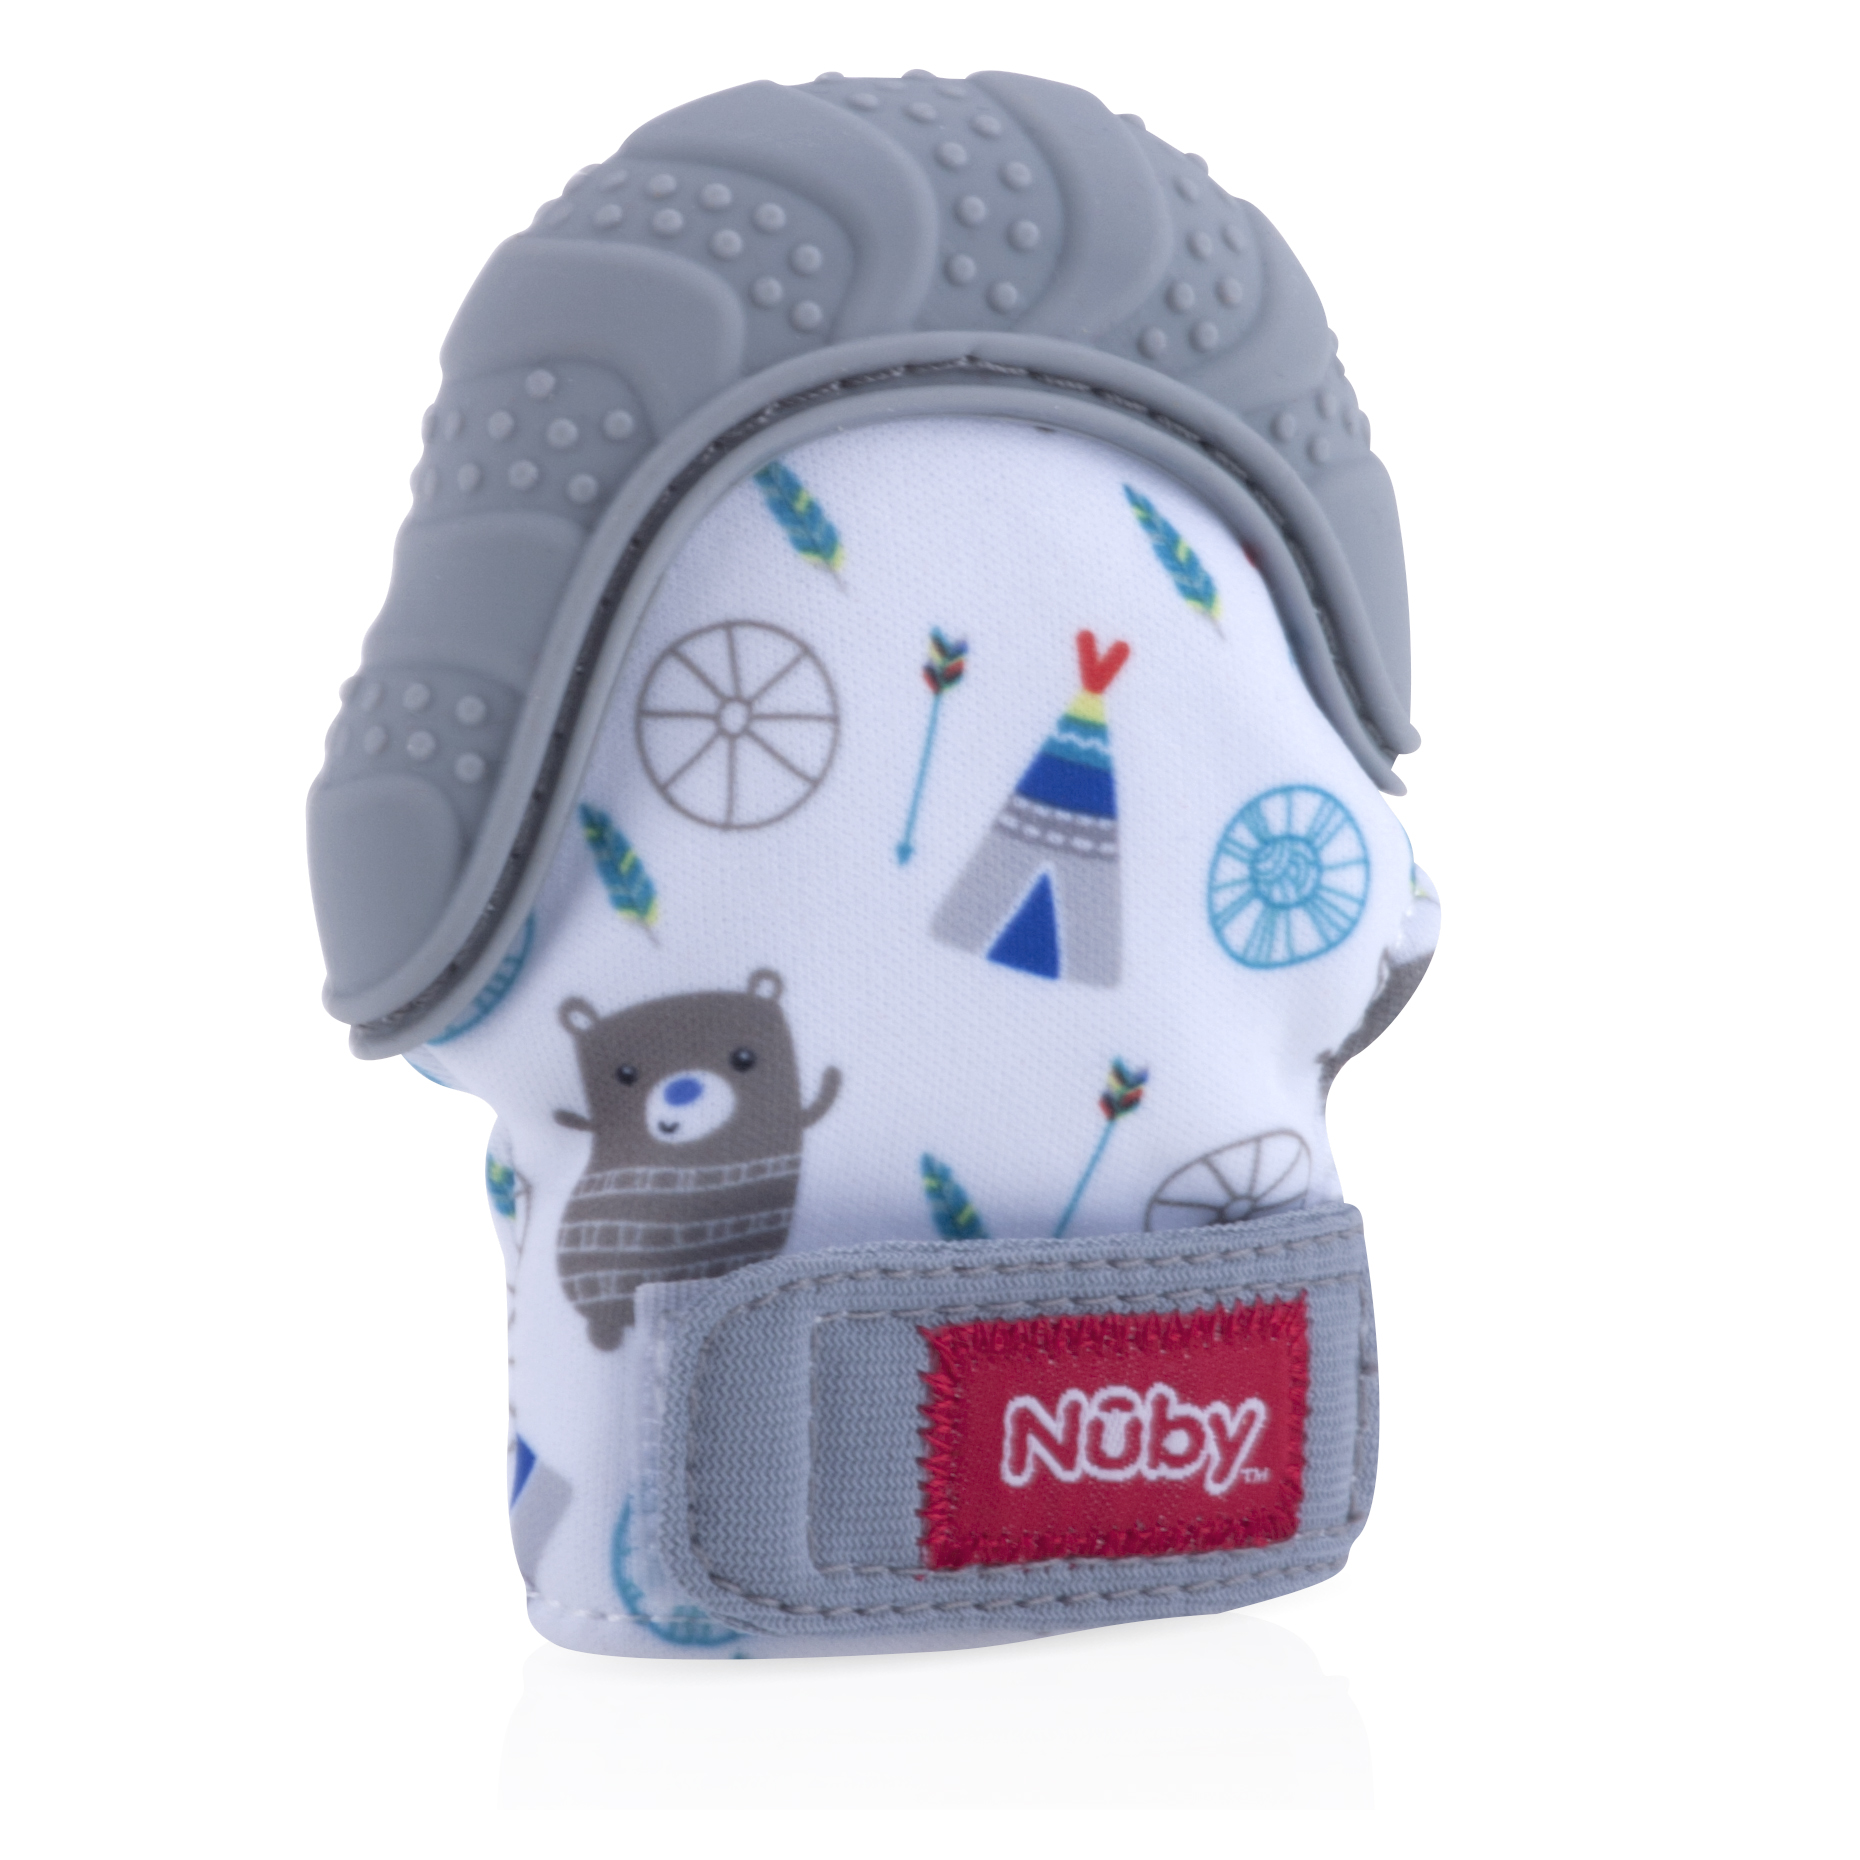 Nuby Teething Mitten with Hygienic Travel Bag, Gray Bear